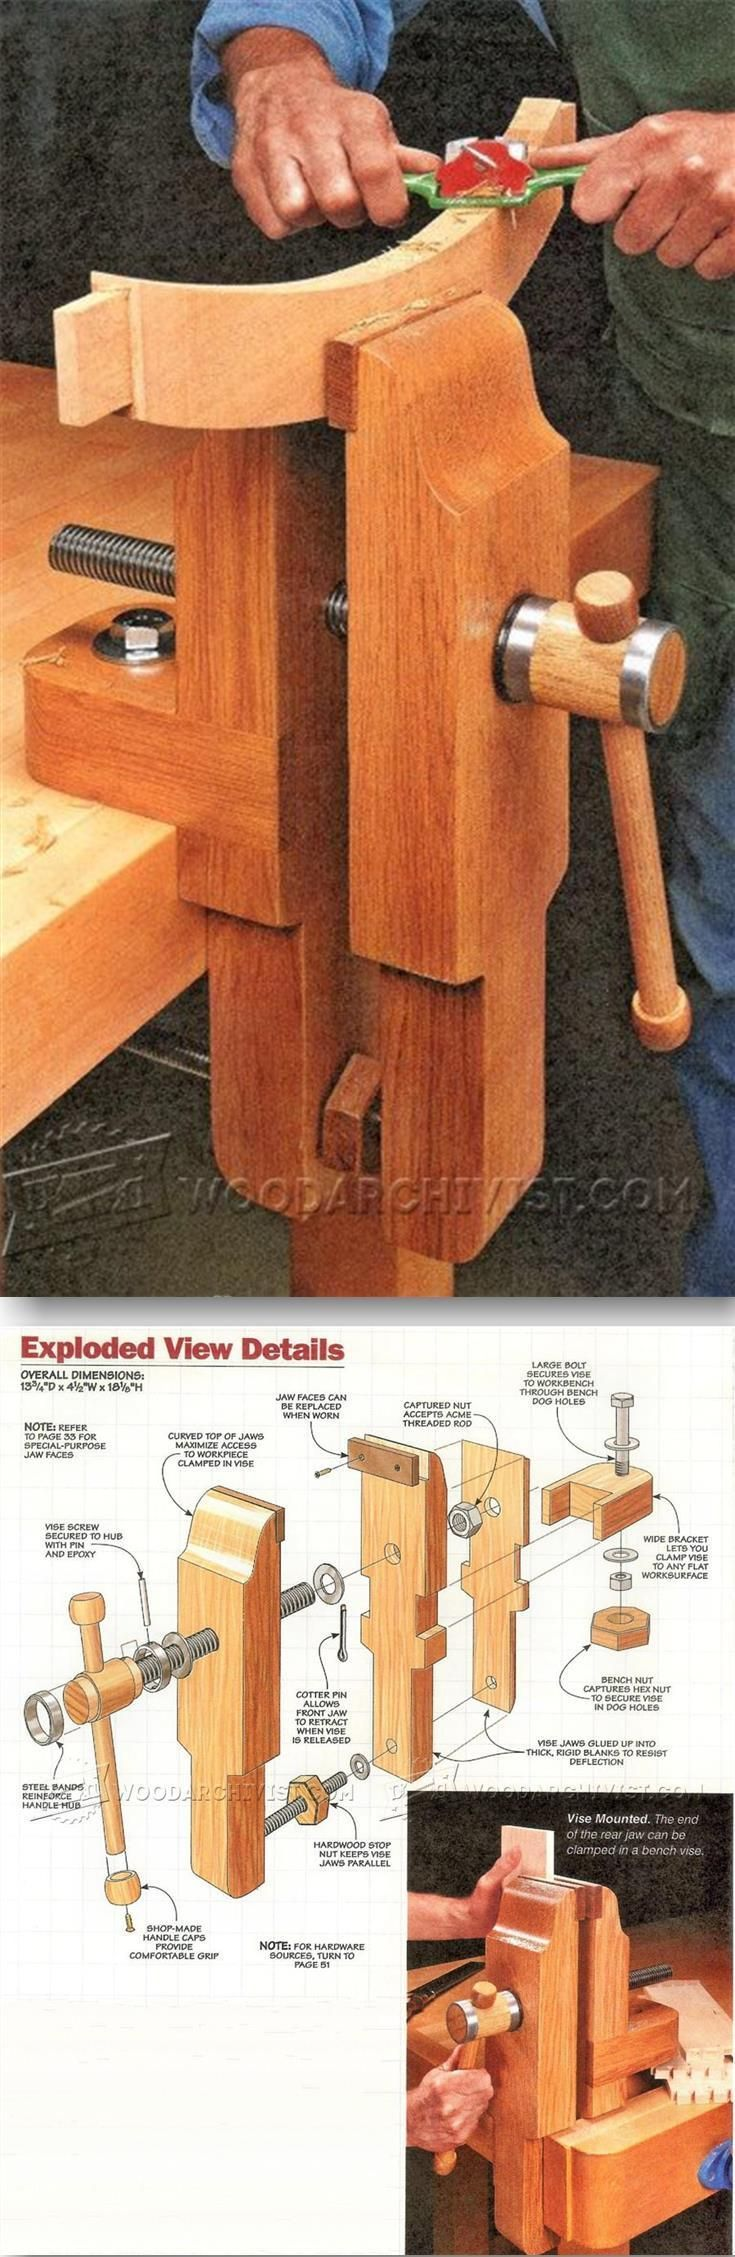 Benchcrafted glide leg vise hardware lee valley tools - Bench Vise Plans Workshop Solutions Projects Tips And Tricks Http